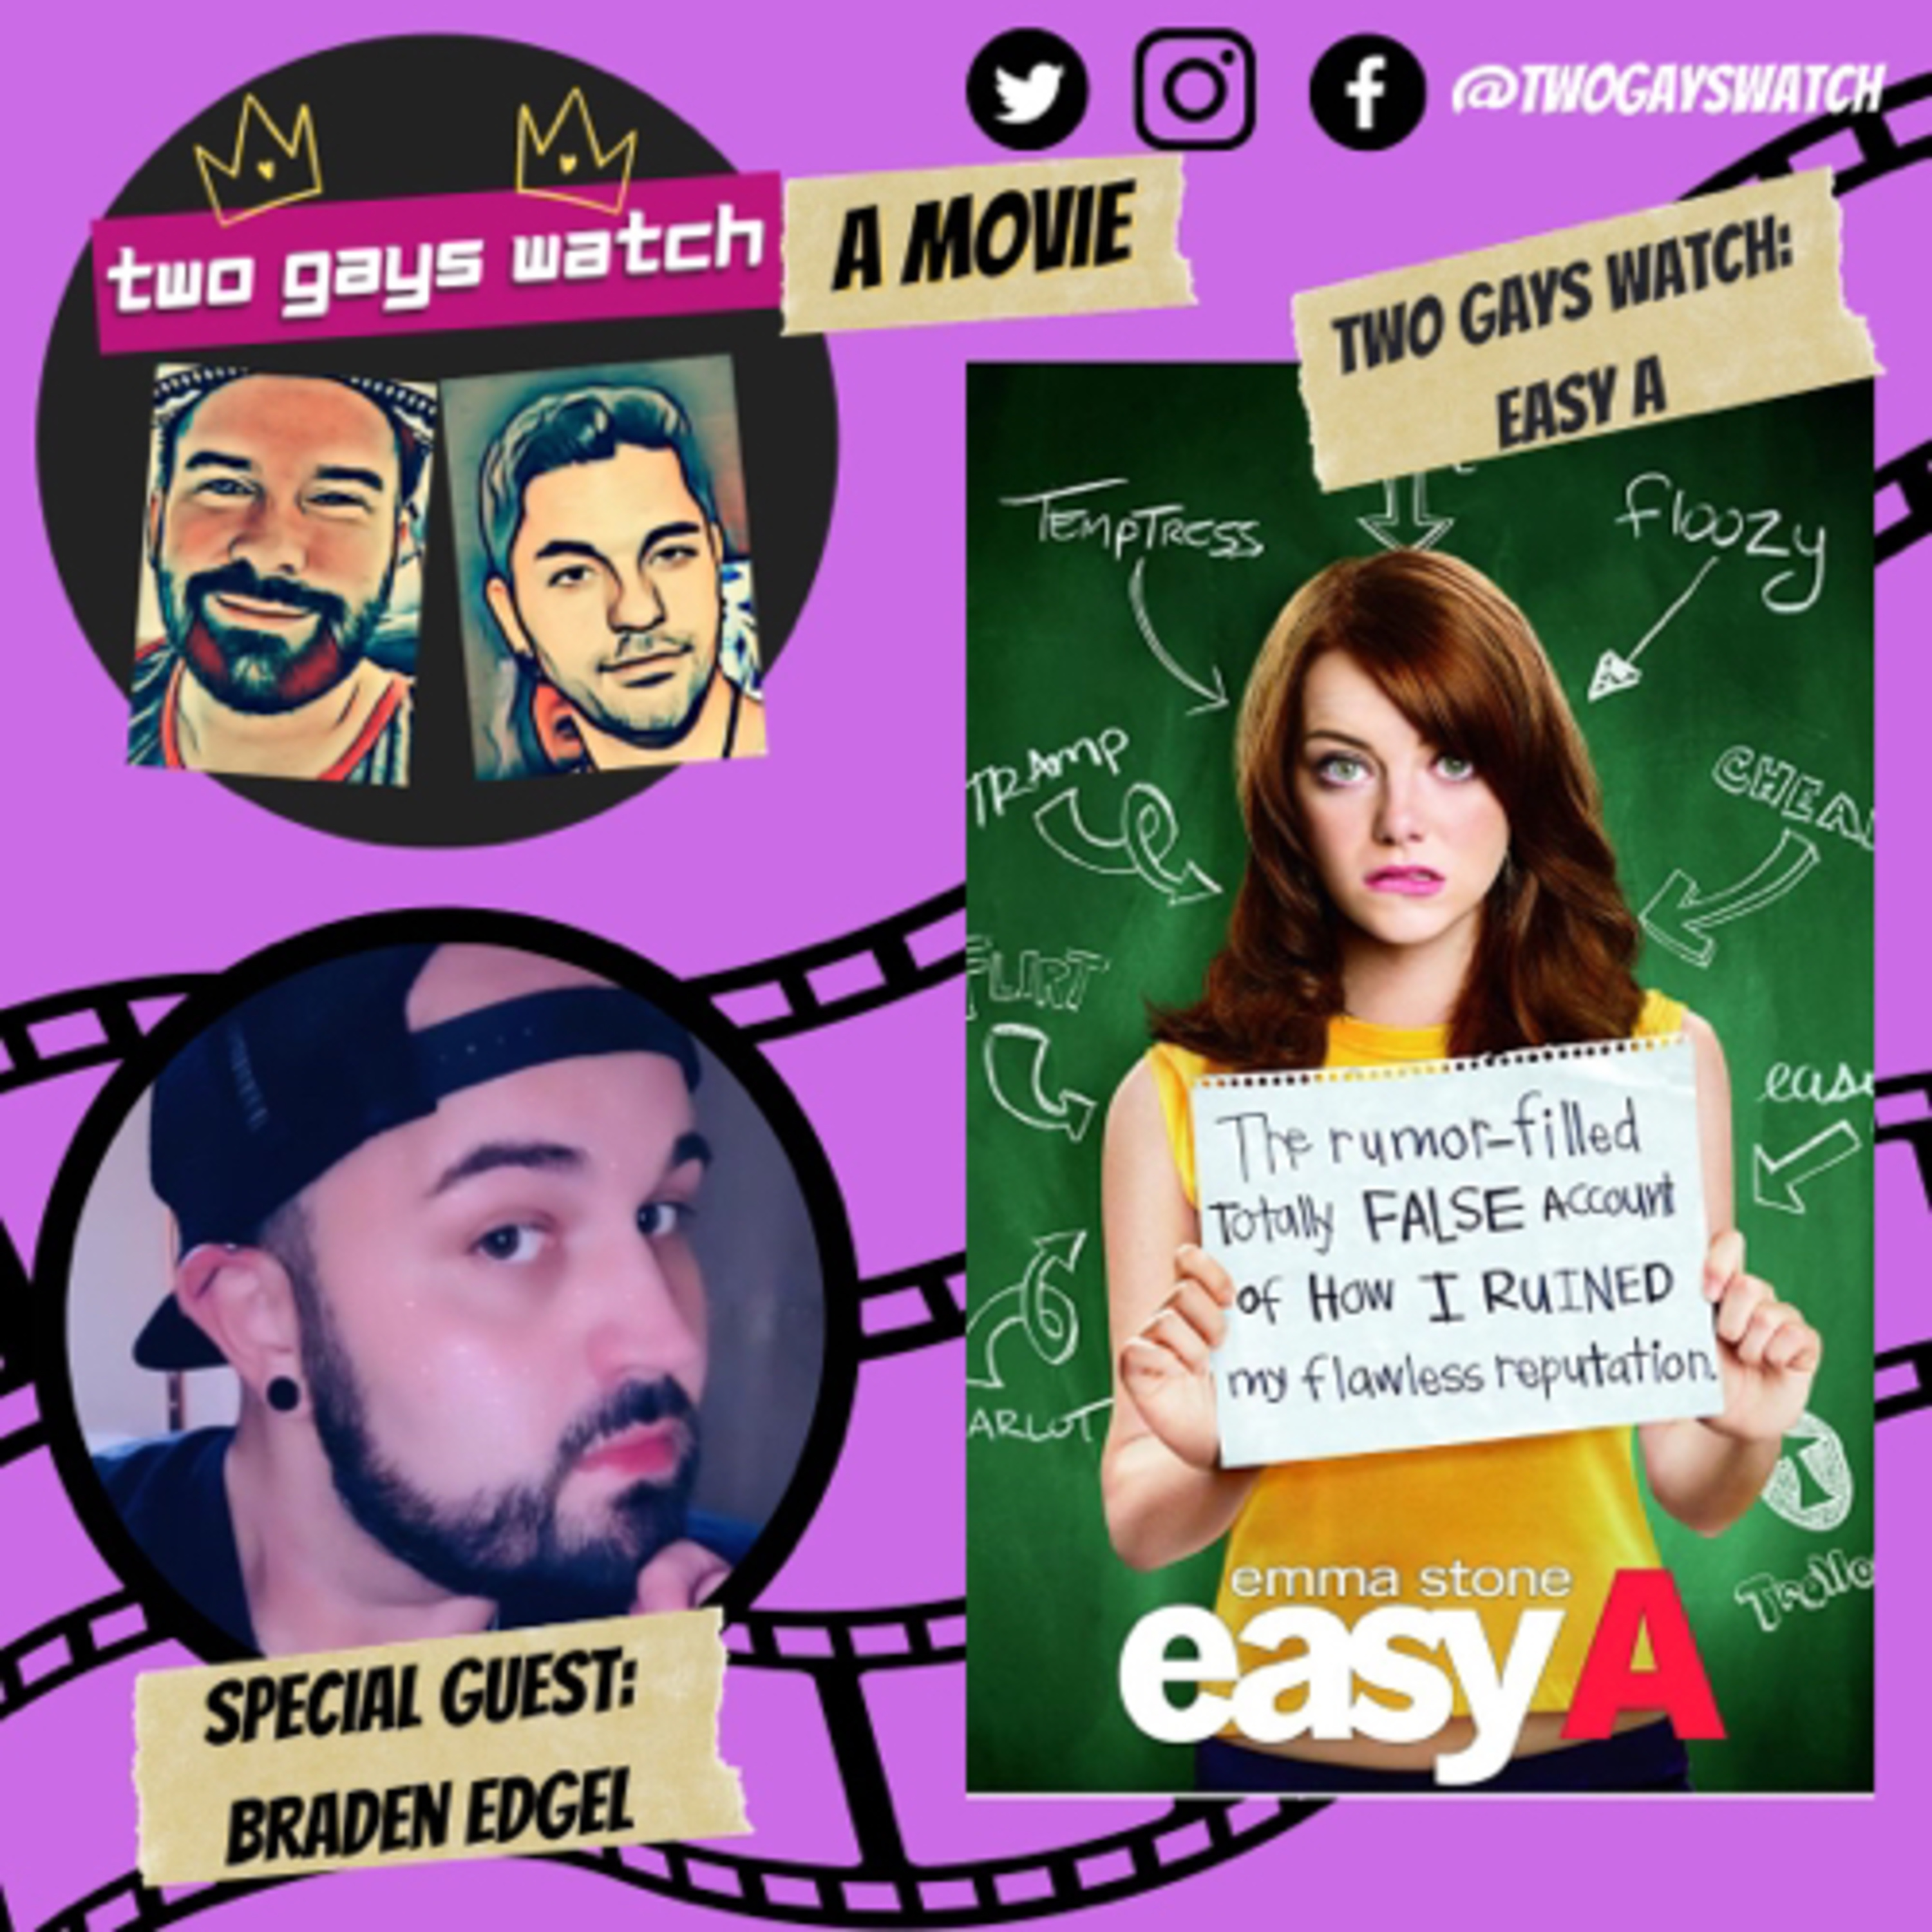 33. Two Gays Watch: Easy A